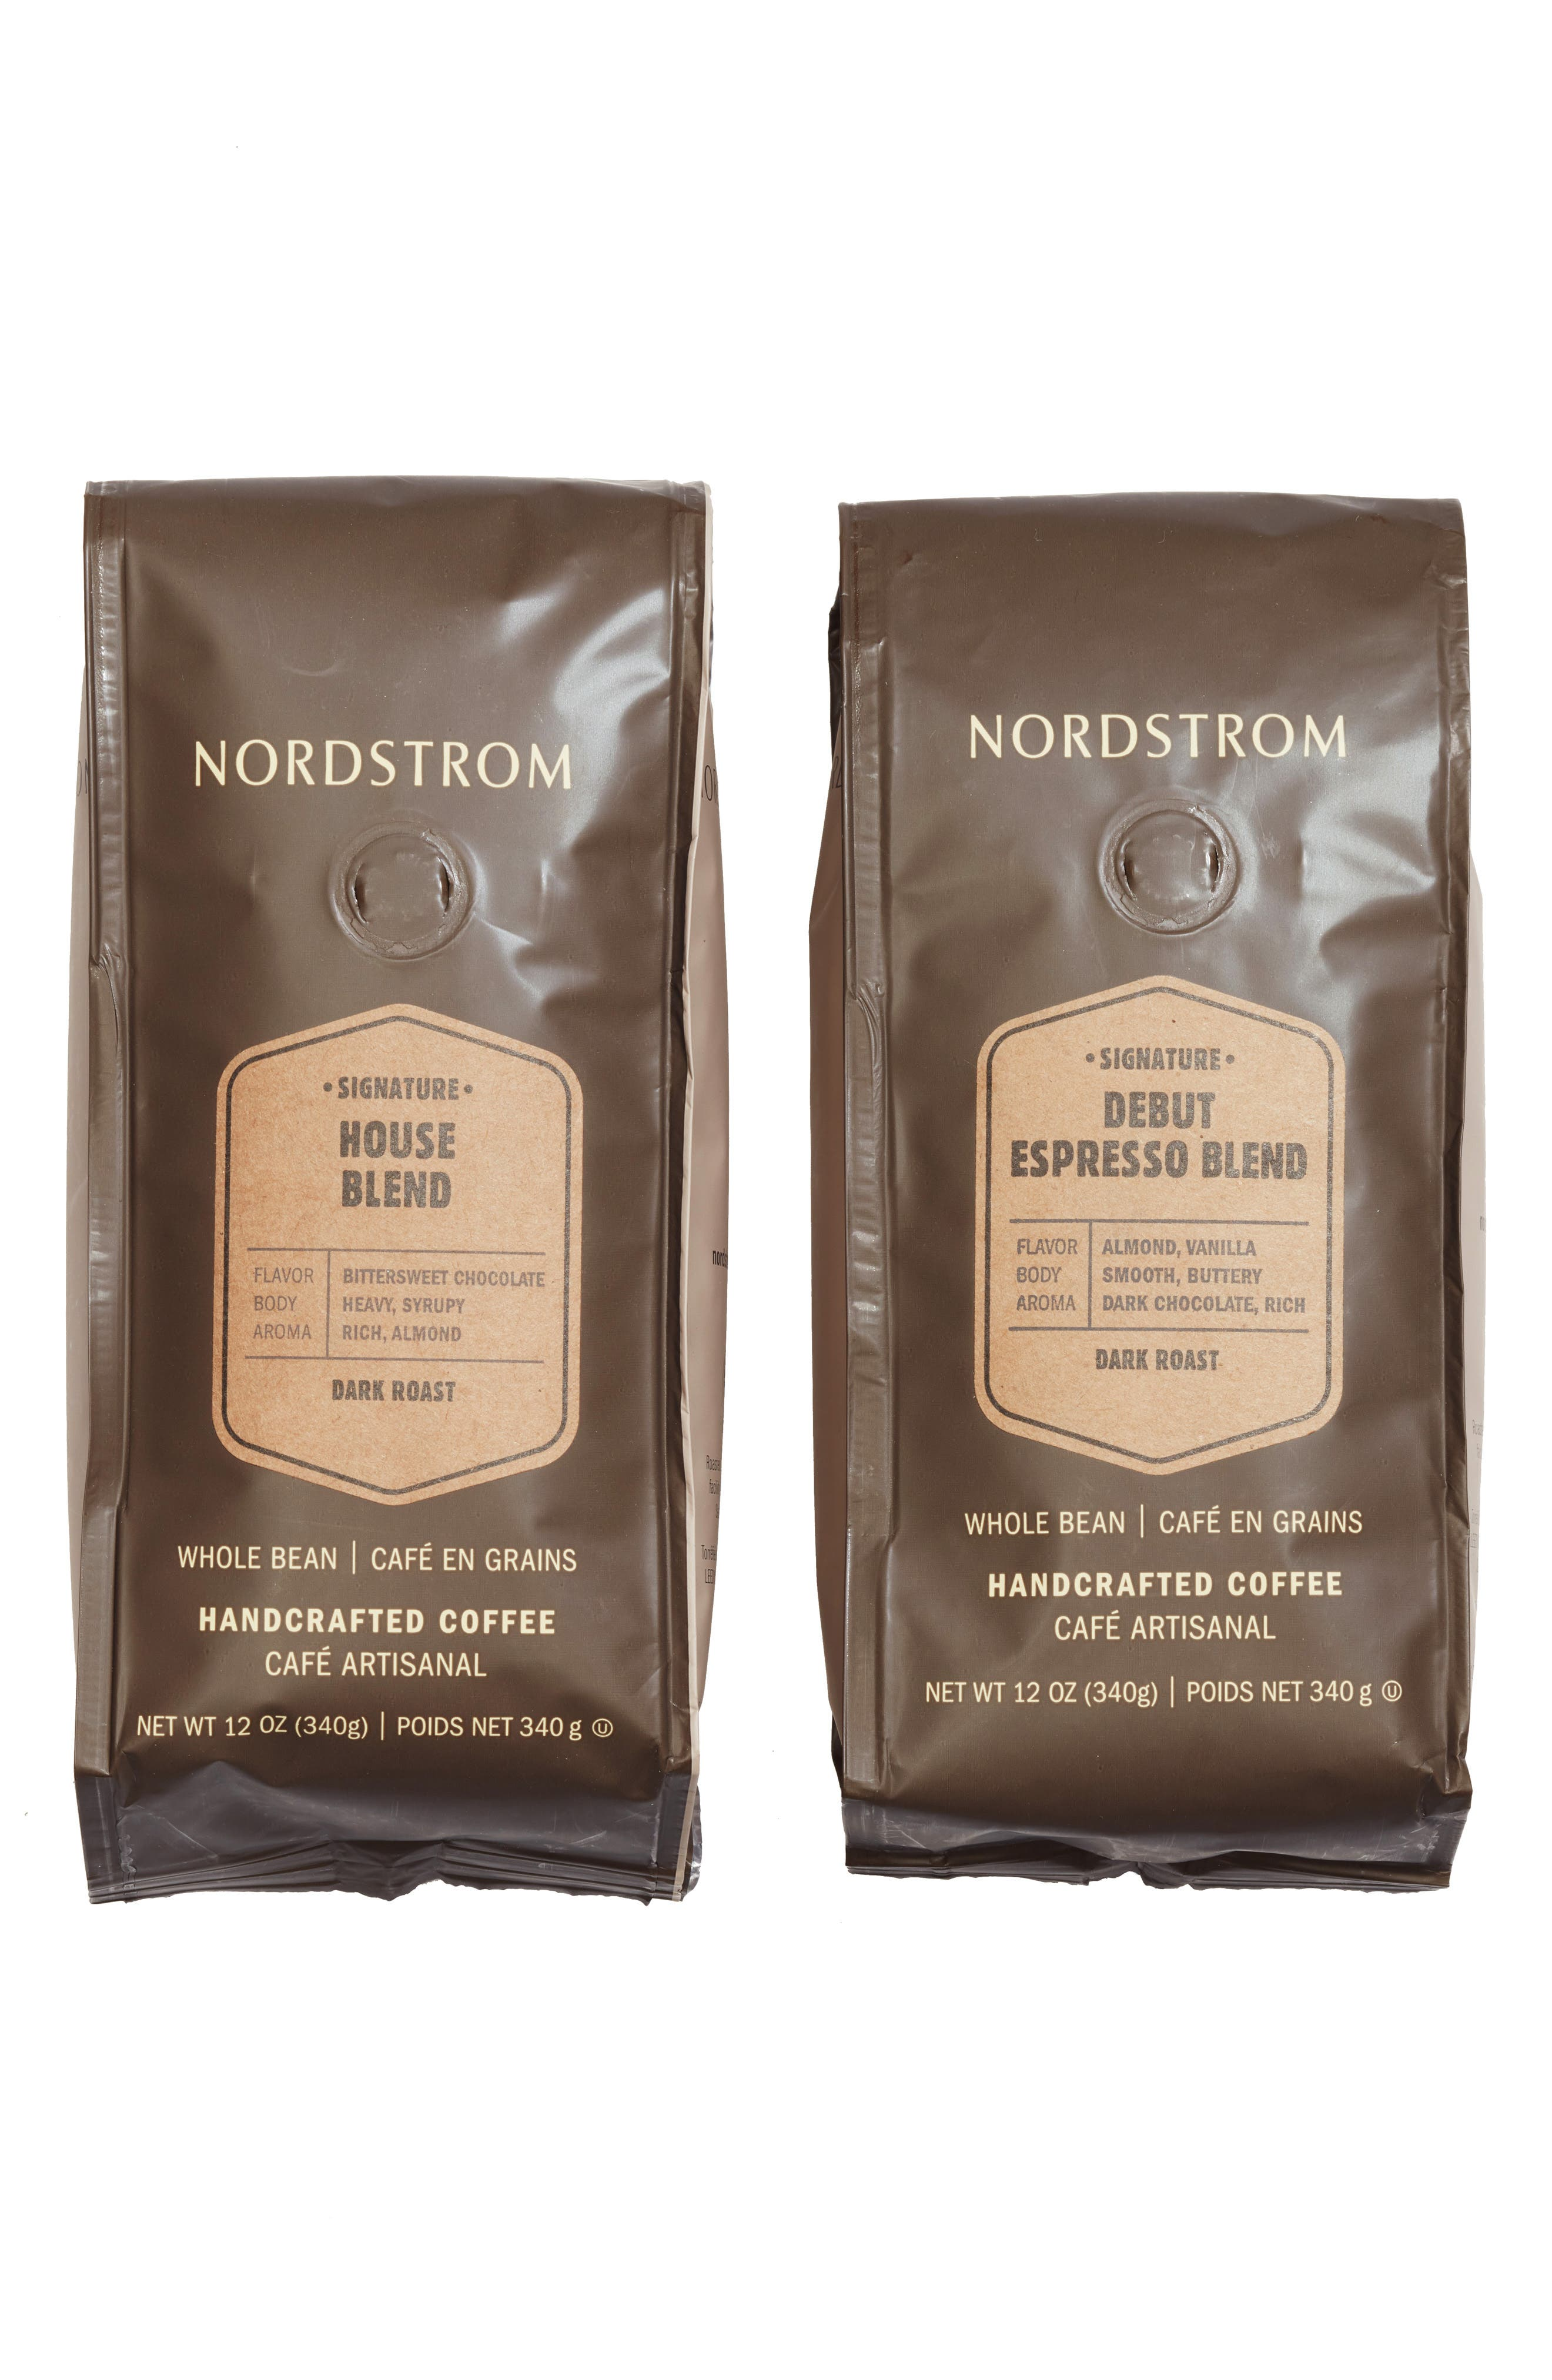 NORDSTROM 2-Pack Coffee Debut Espresso Blend Whole Bean Coffee, Main, color, BEIGE/ KHAKI